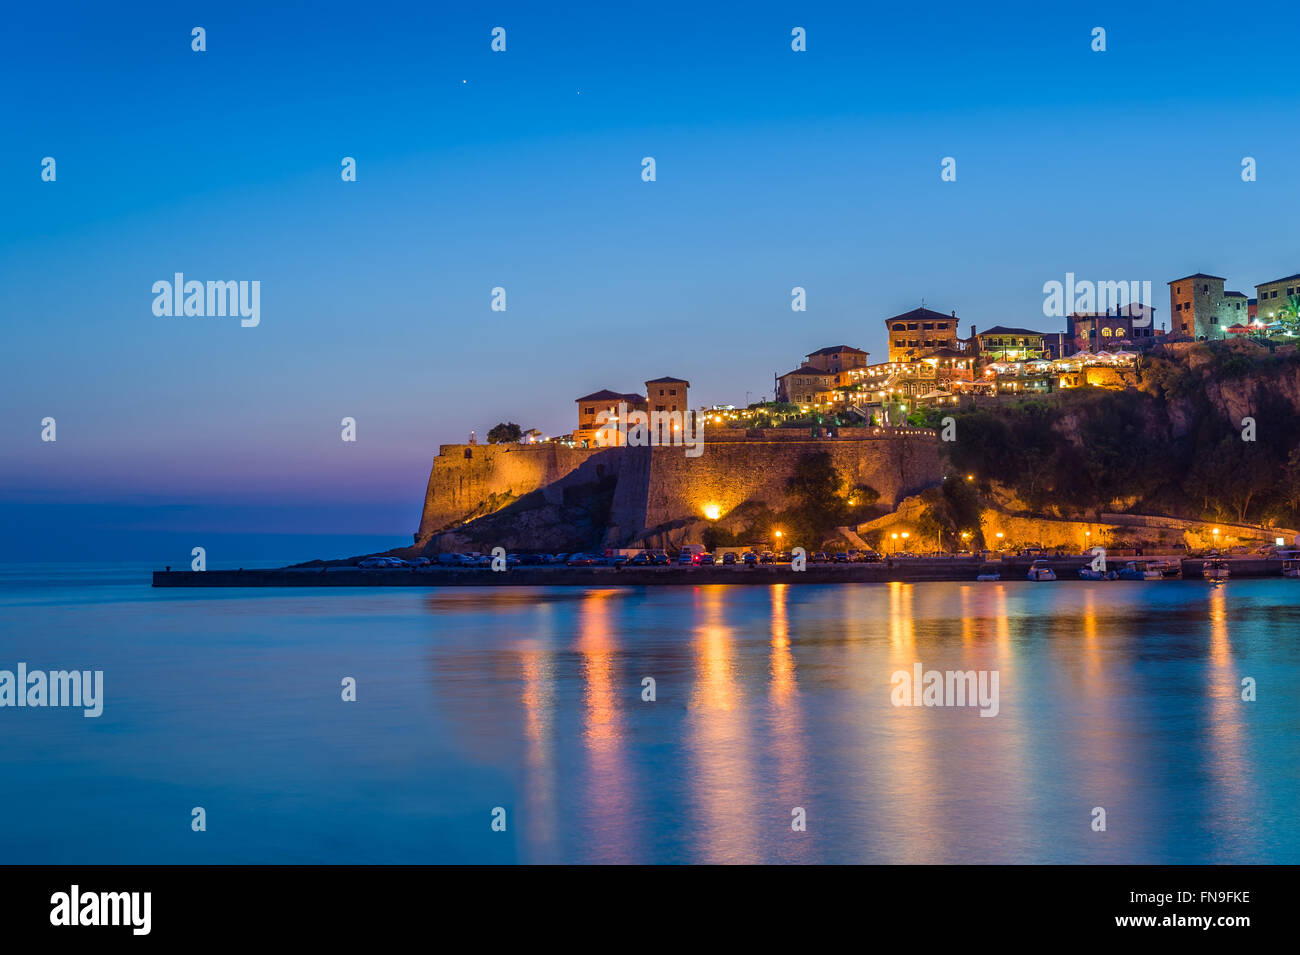 Ulcinj old town fortress at night with silky water and stars on a sky. - Stock Image